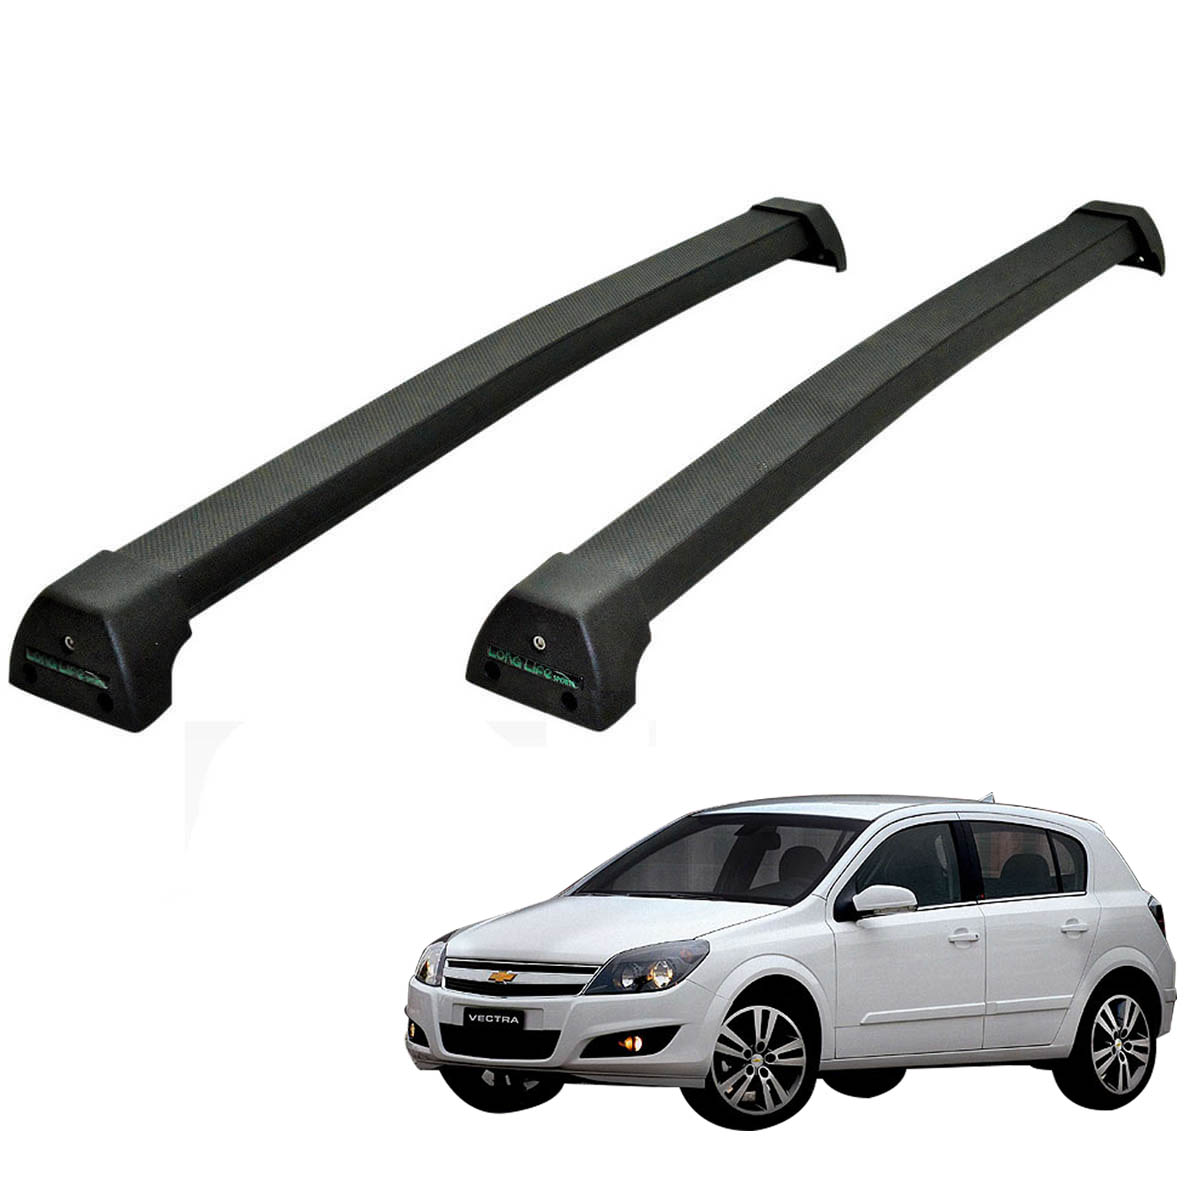 Rack de teto Vectra GT GTX 2008 a 2011 Long Life Sports preto